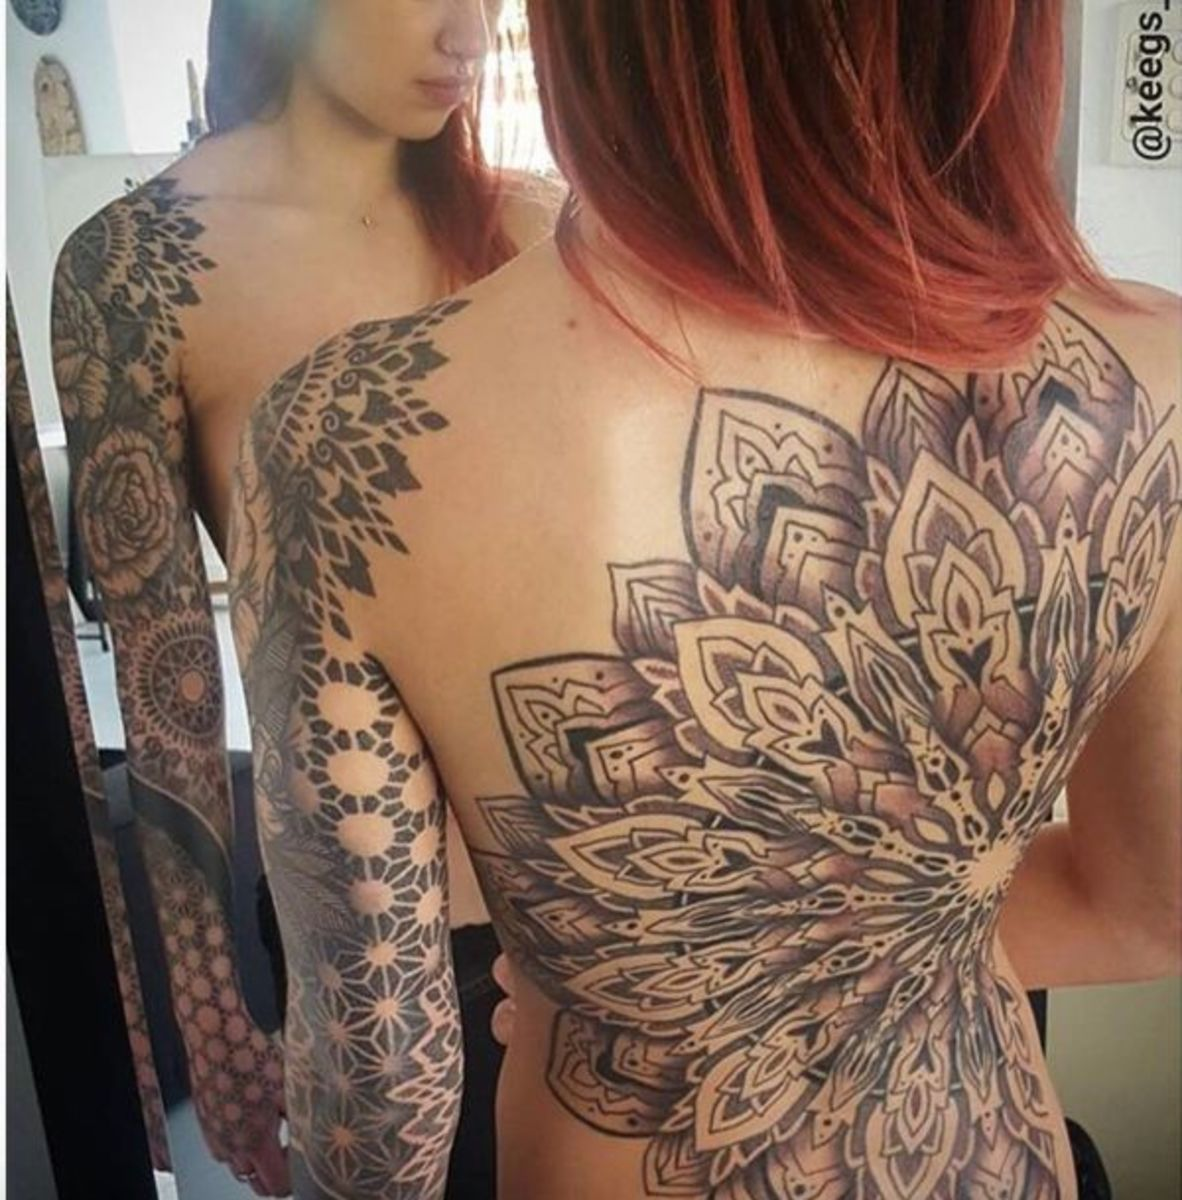 120 Stunning Back Tattoos Ideas To Choose From